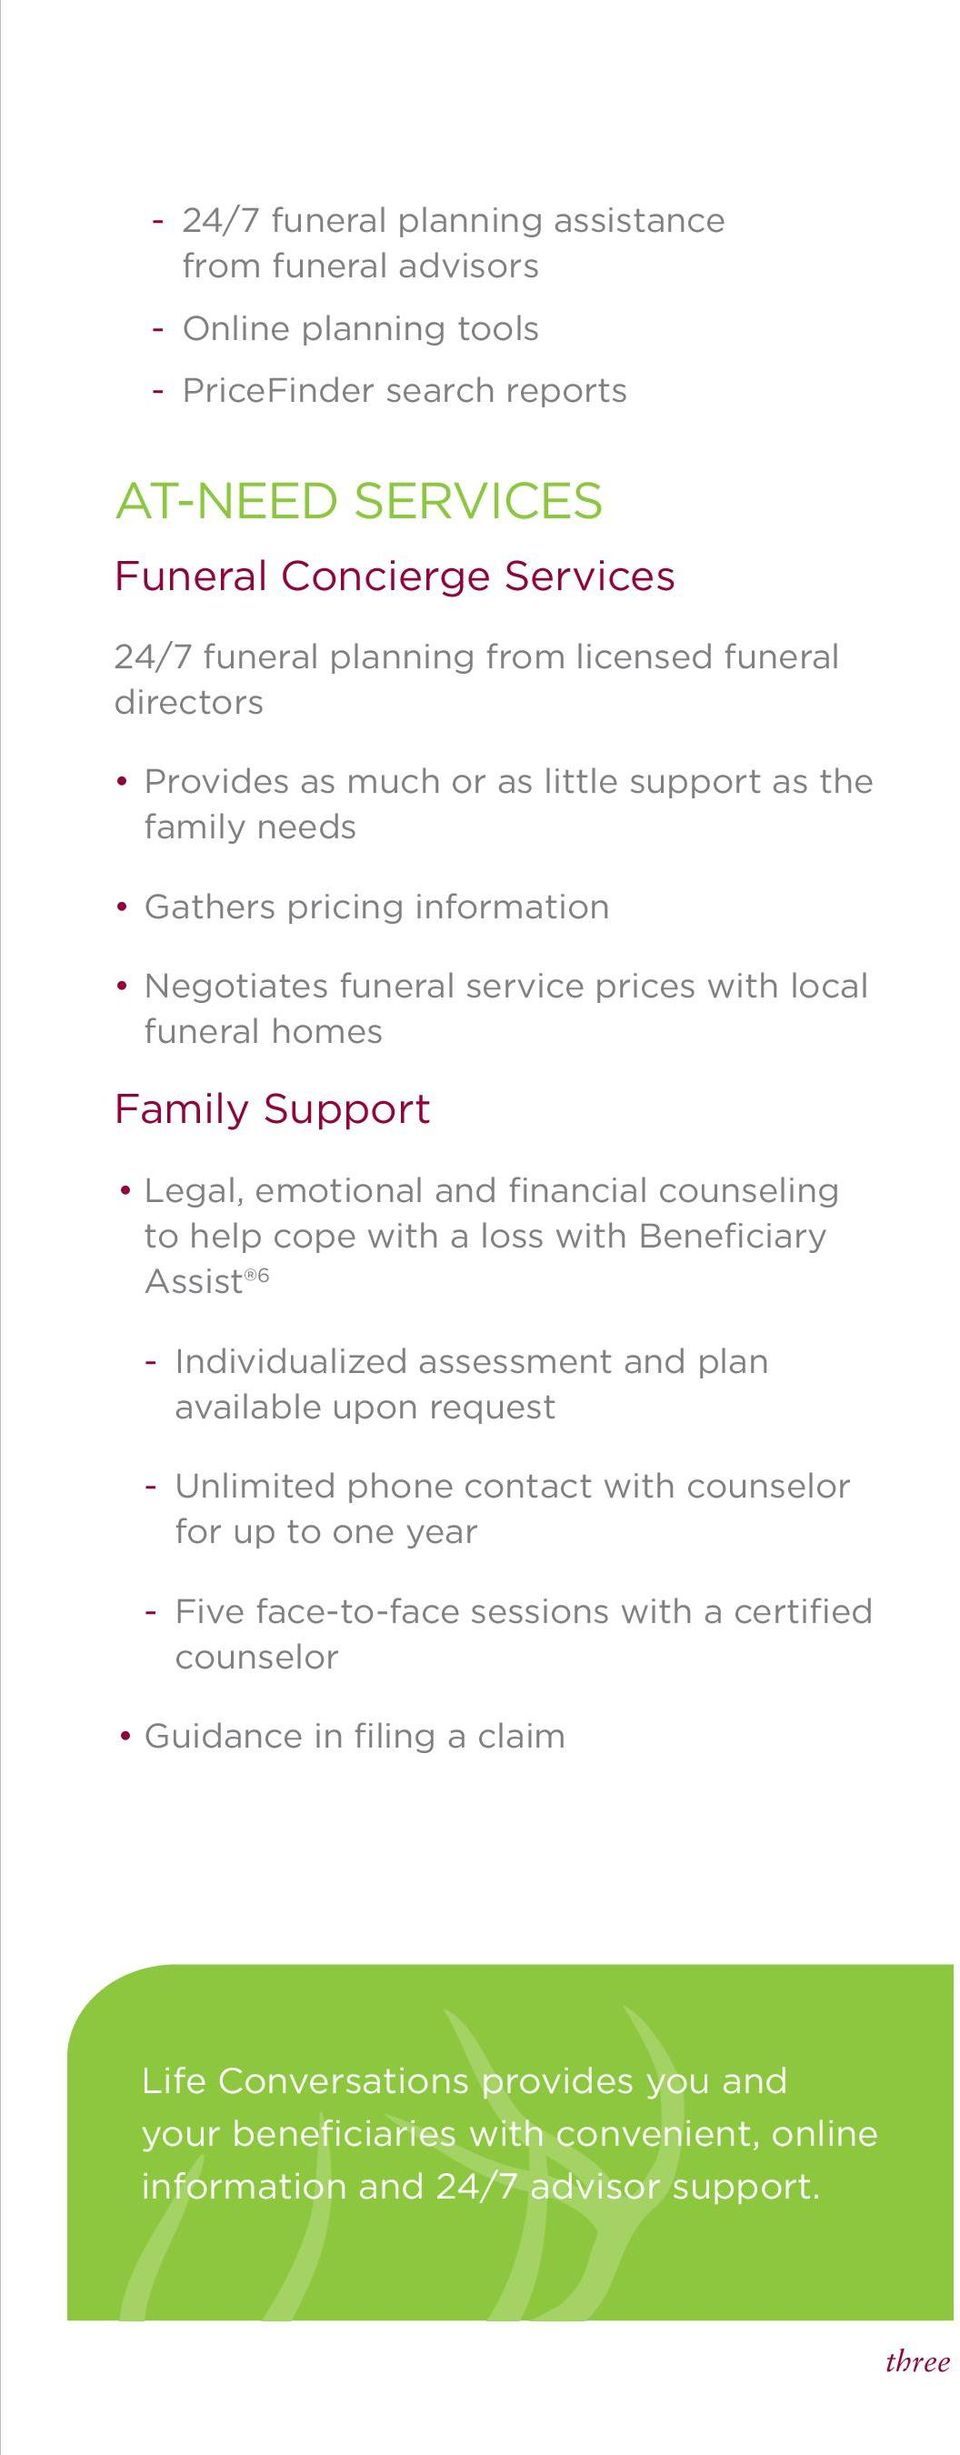 and financial counseling to help cope with a loss with Beneficiary Assist 6 - Individualized assessment and plan available upon request - Unlimited phone contact with counselor for up to one year